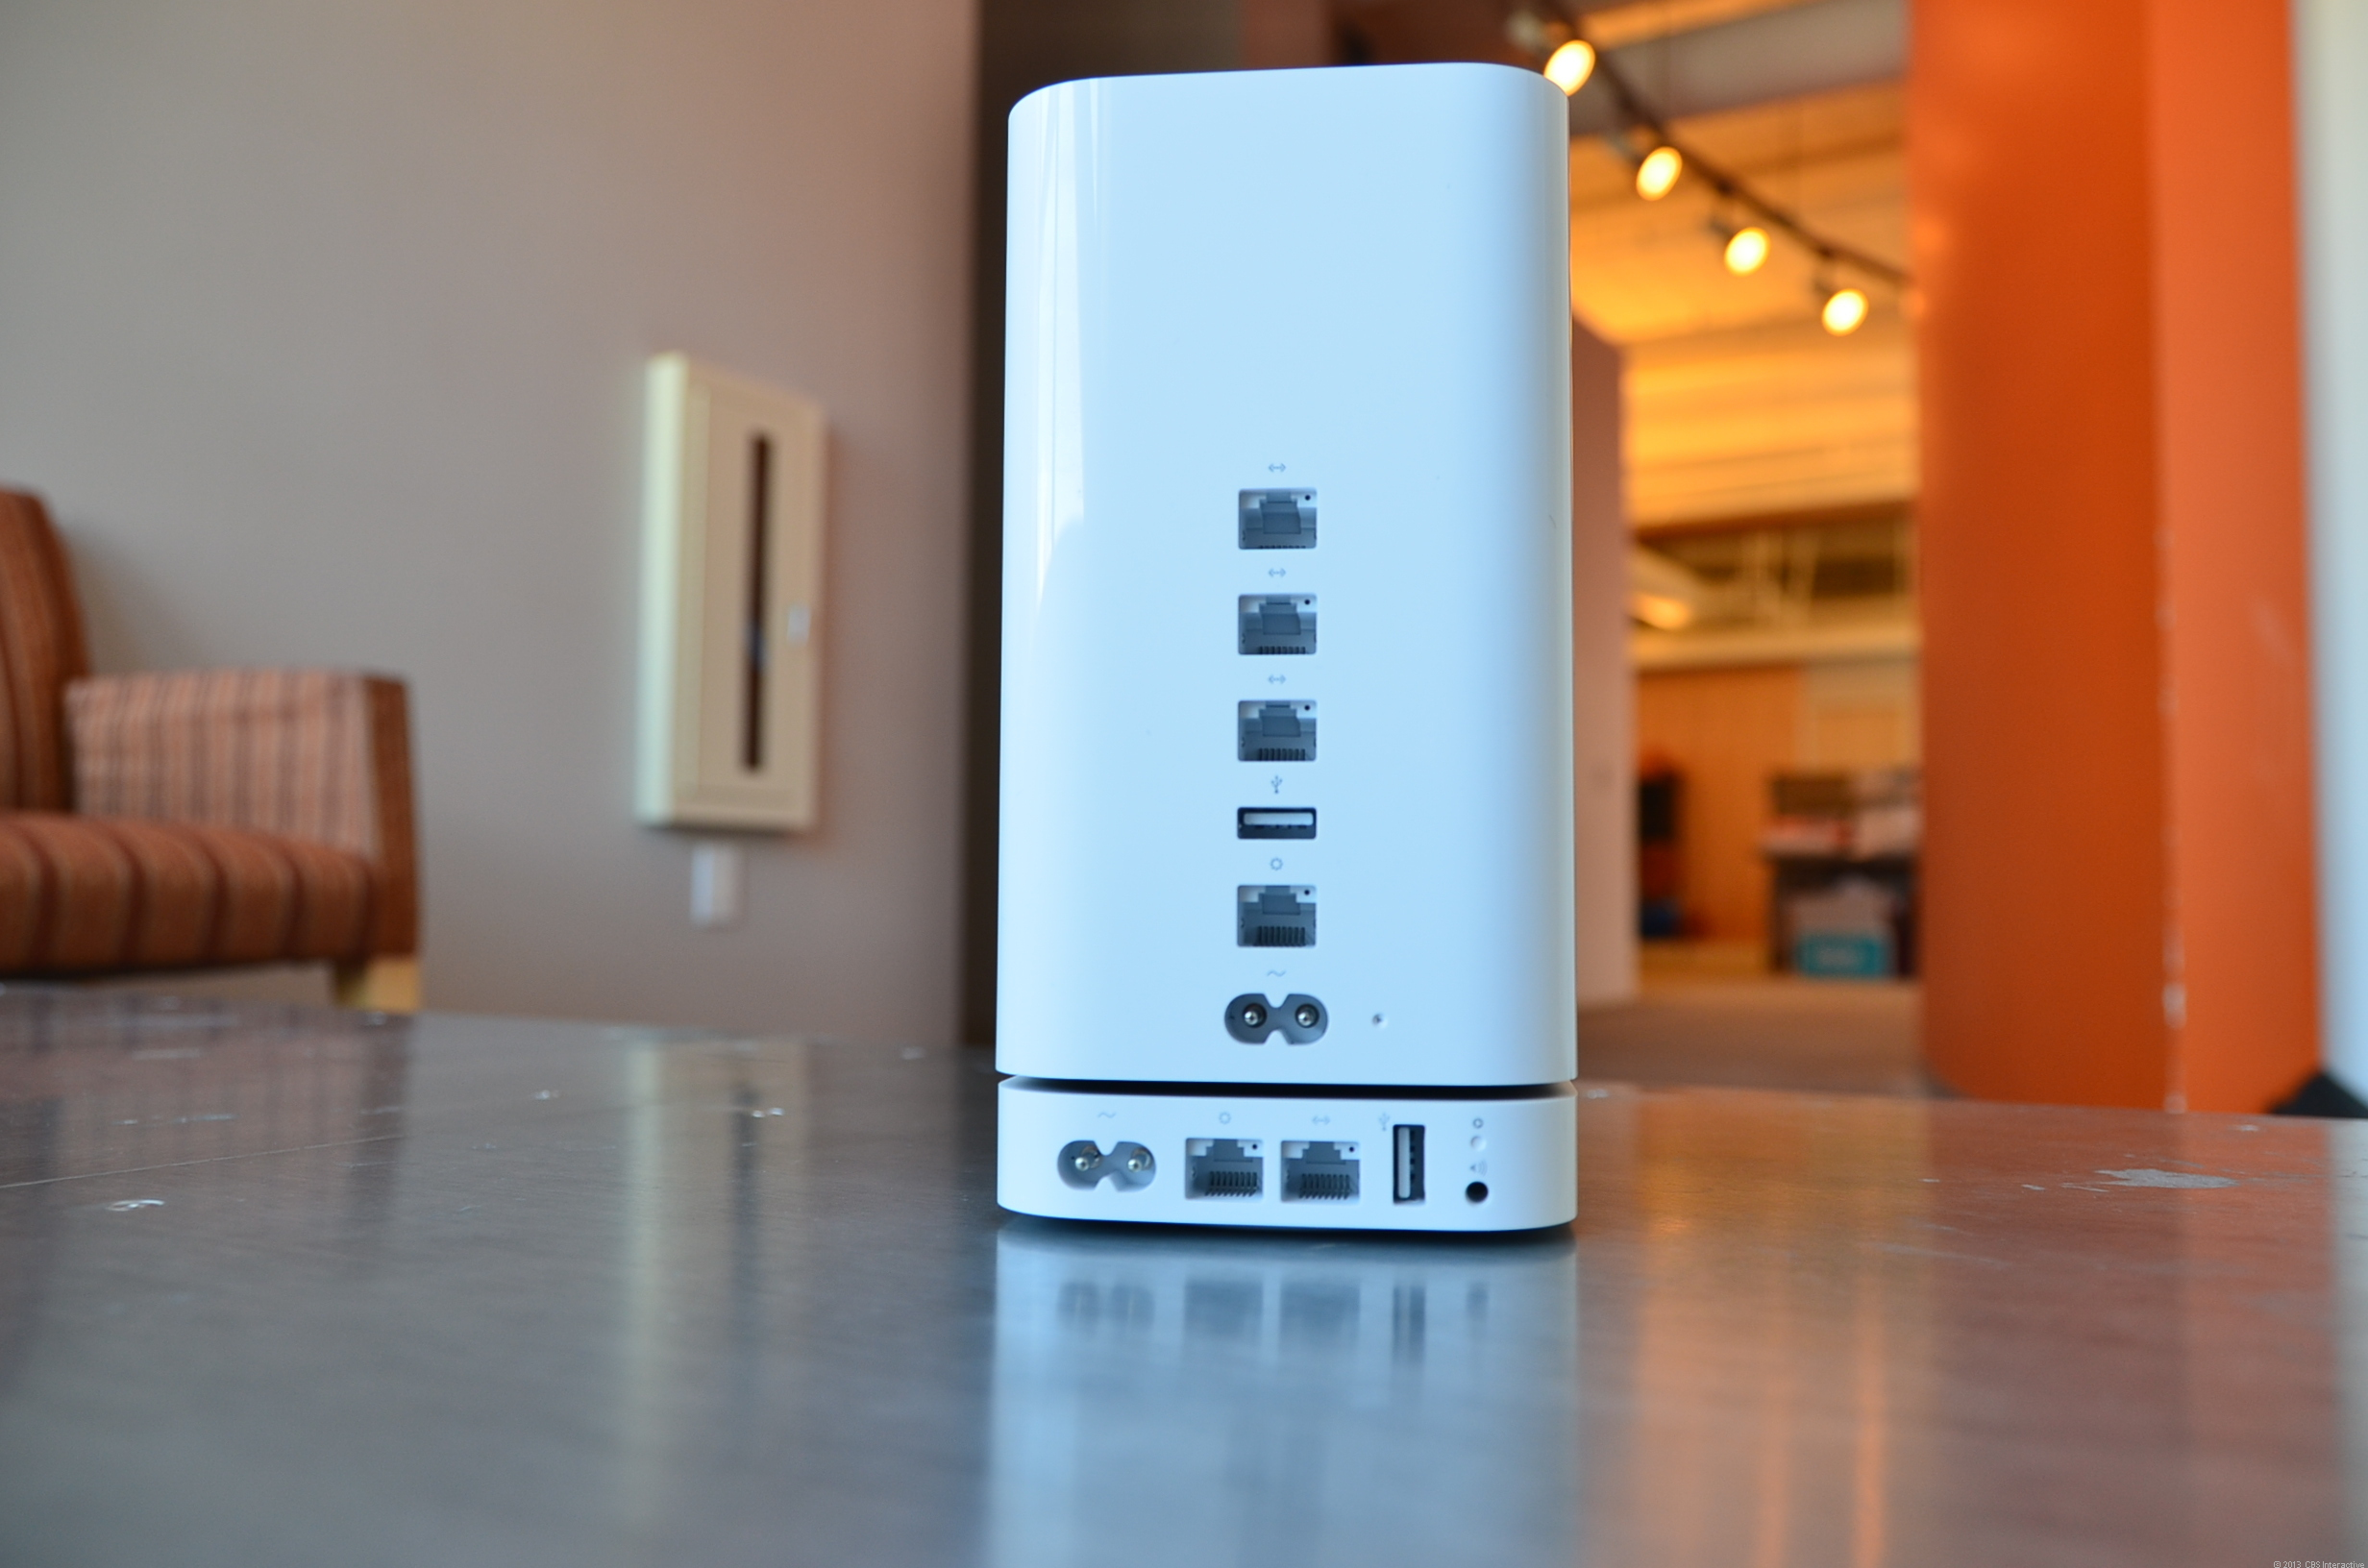 The new AirPort Extreme Base Station has the same footprint as the AirPort Express (bottom), but is much taller. Note the AirPlay audio port on the AirPort Express that the AirPort Extreme doesn't have.